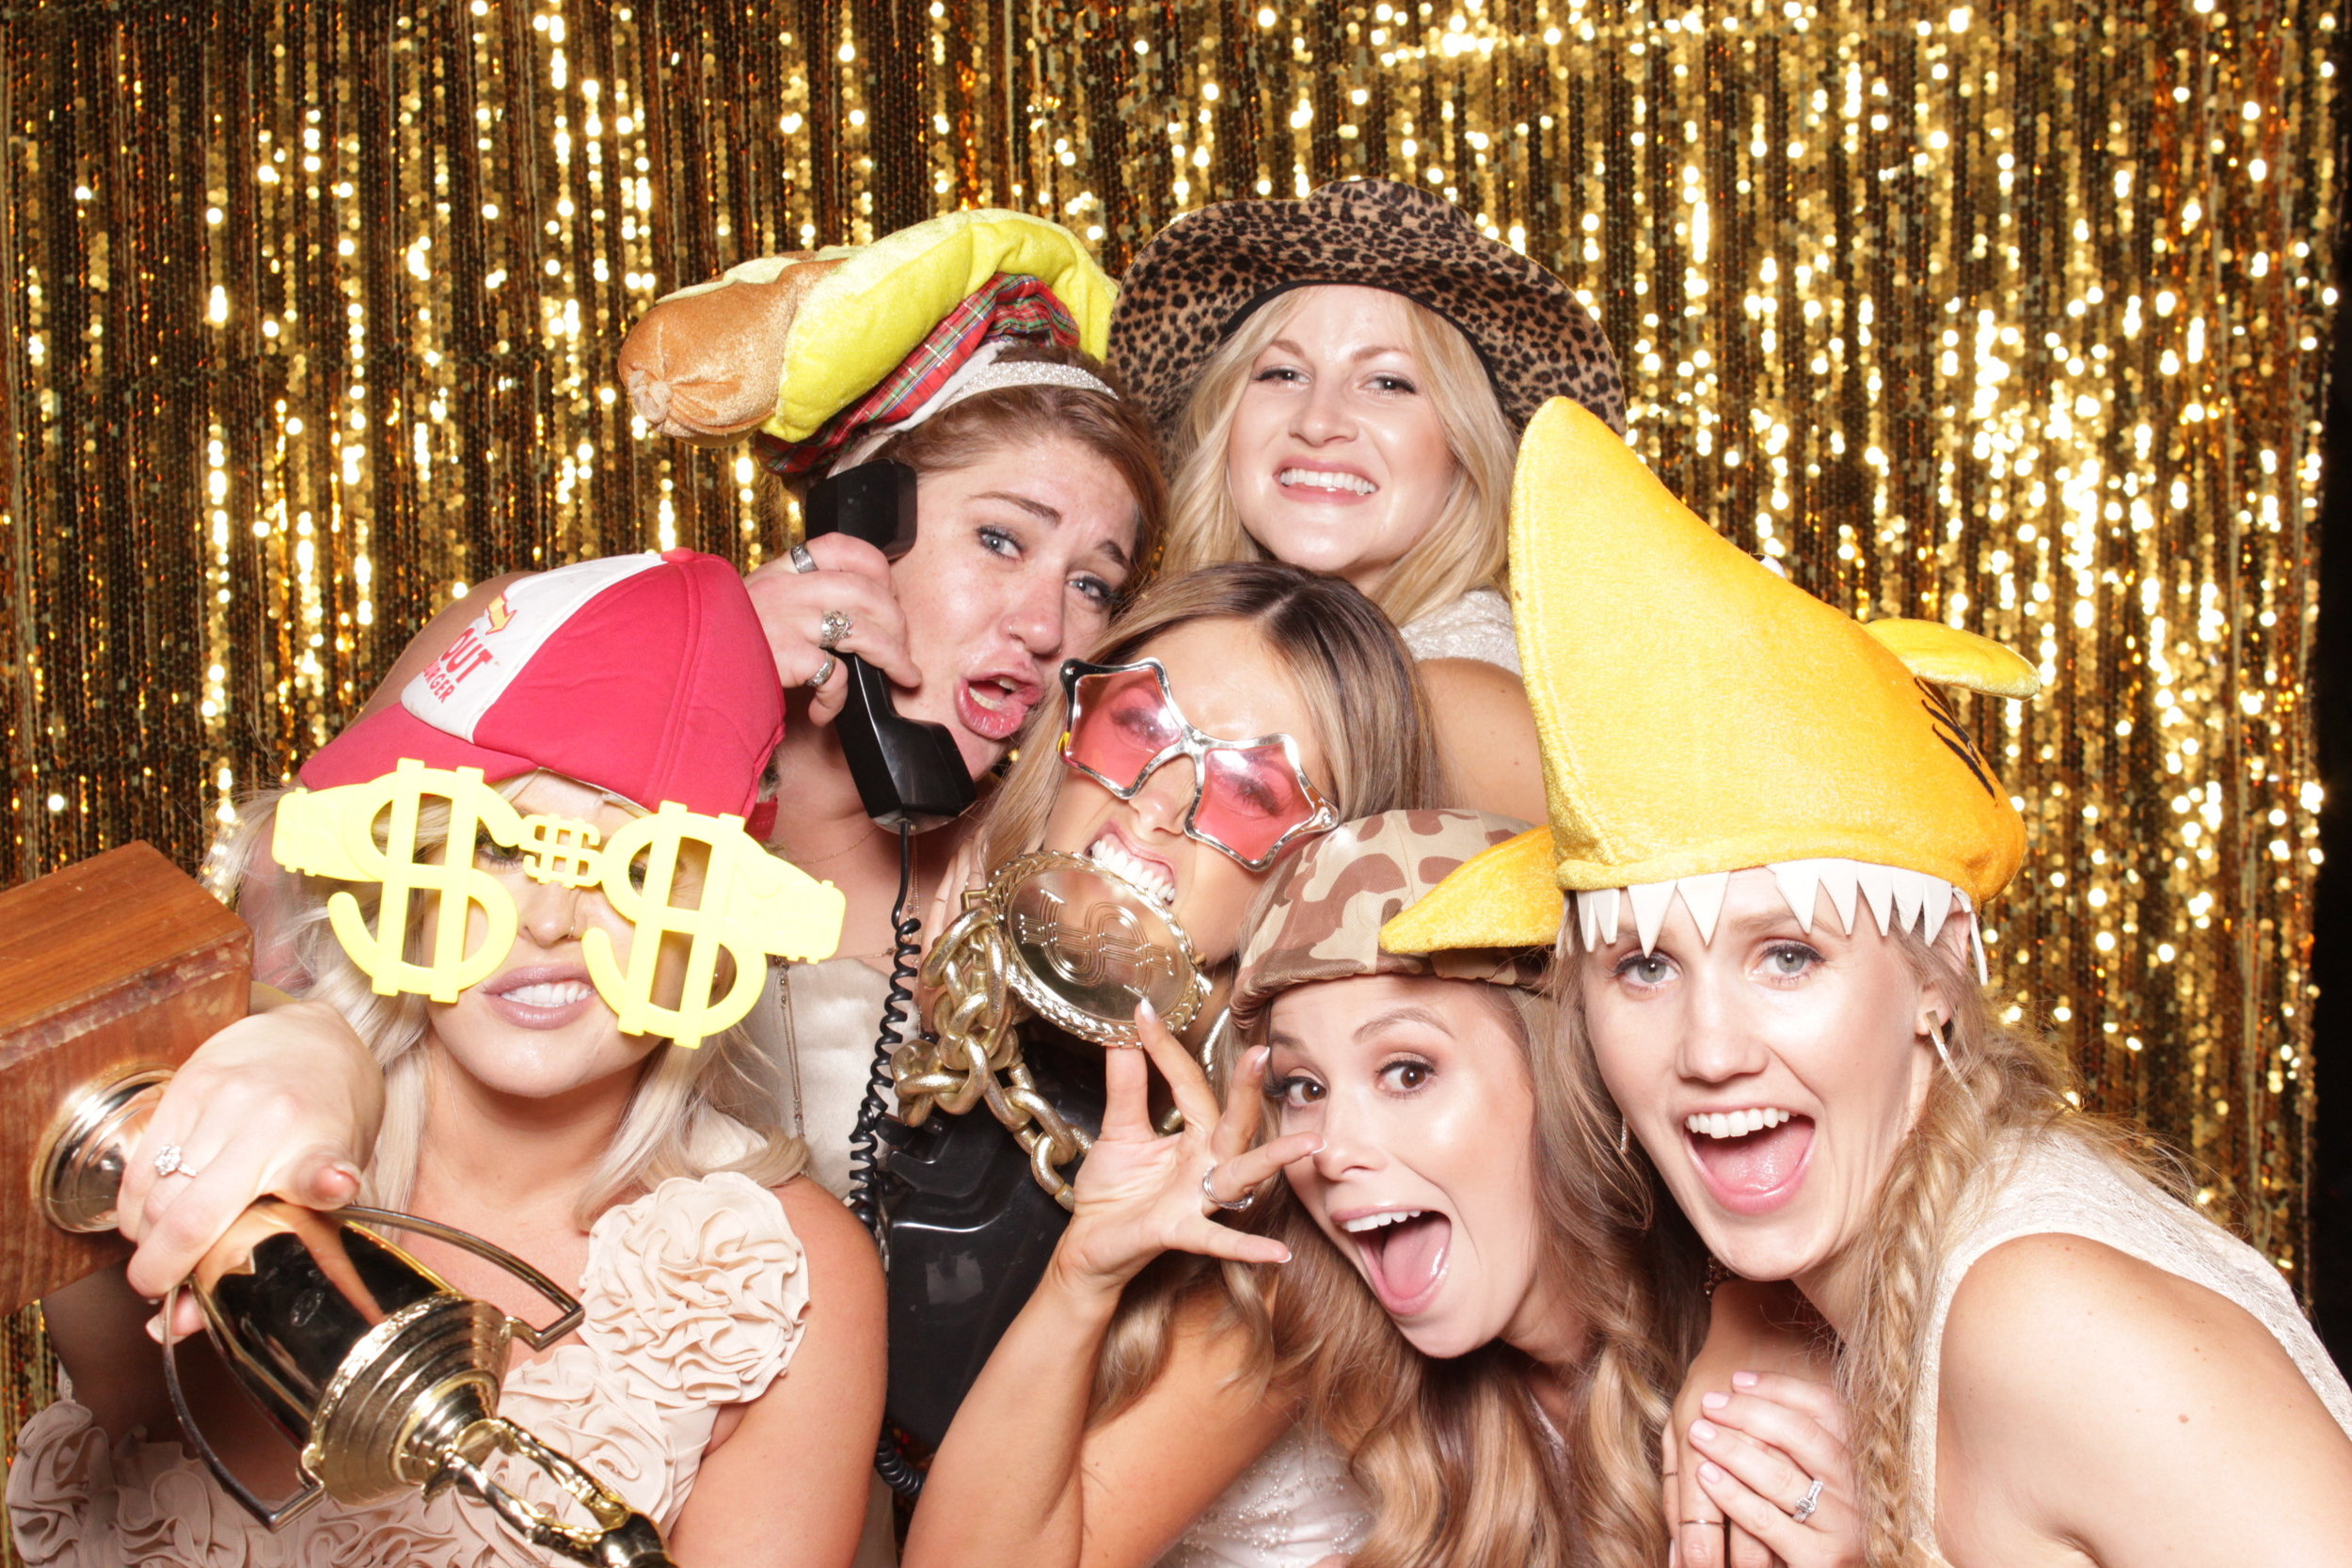 photo-booths-in-chico-rental-wedding-gals